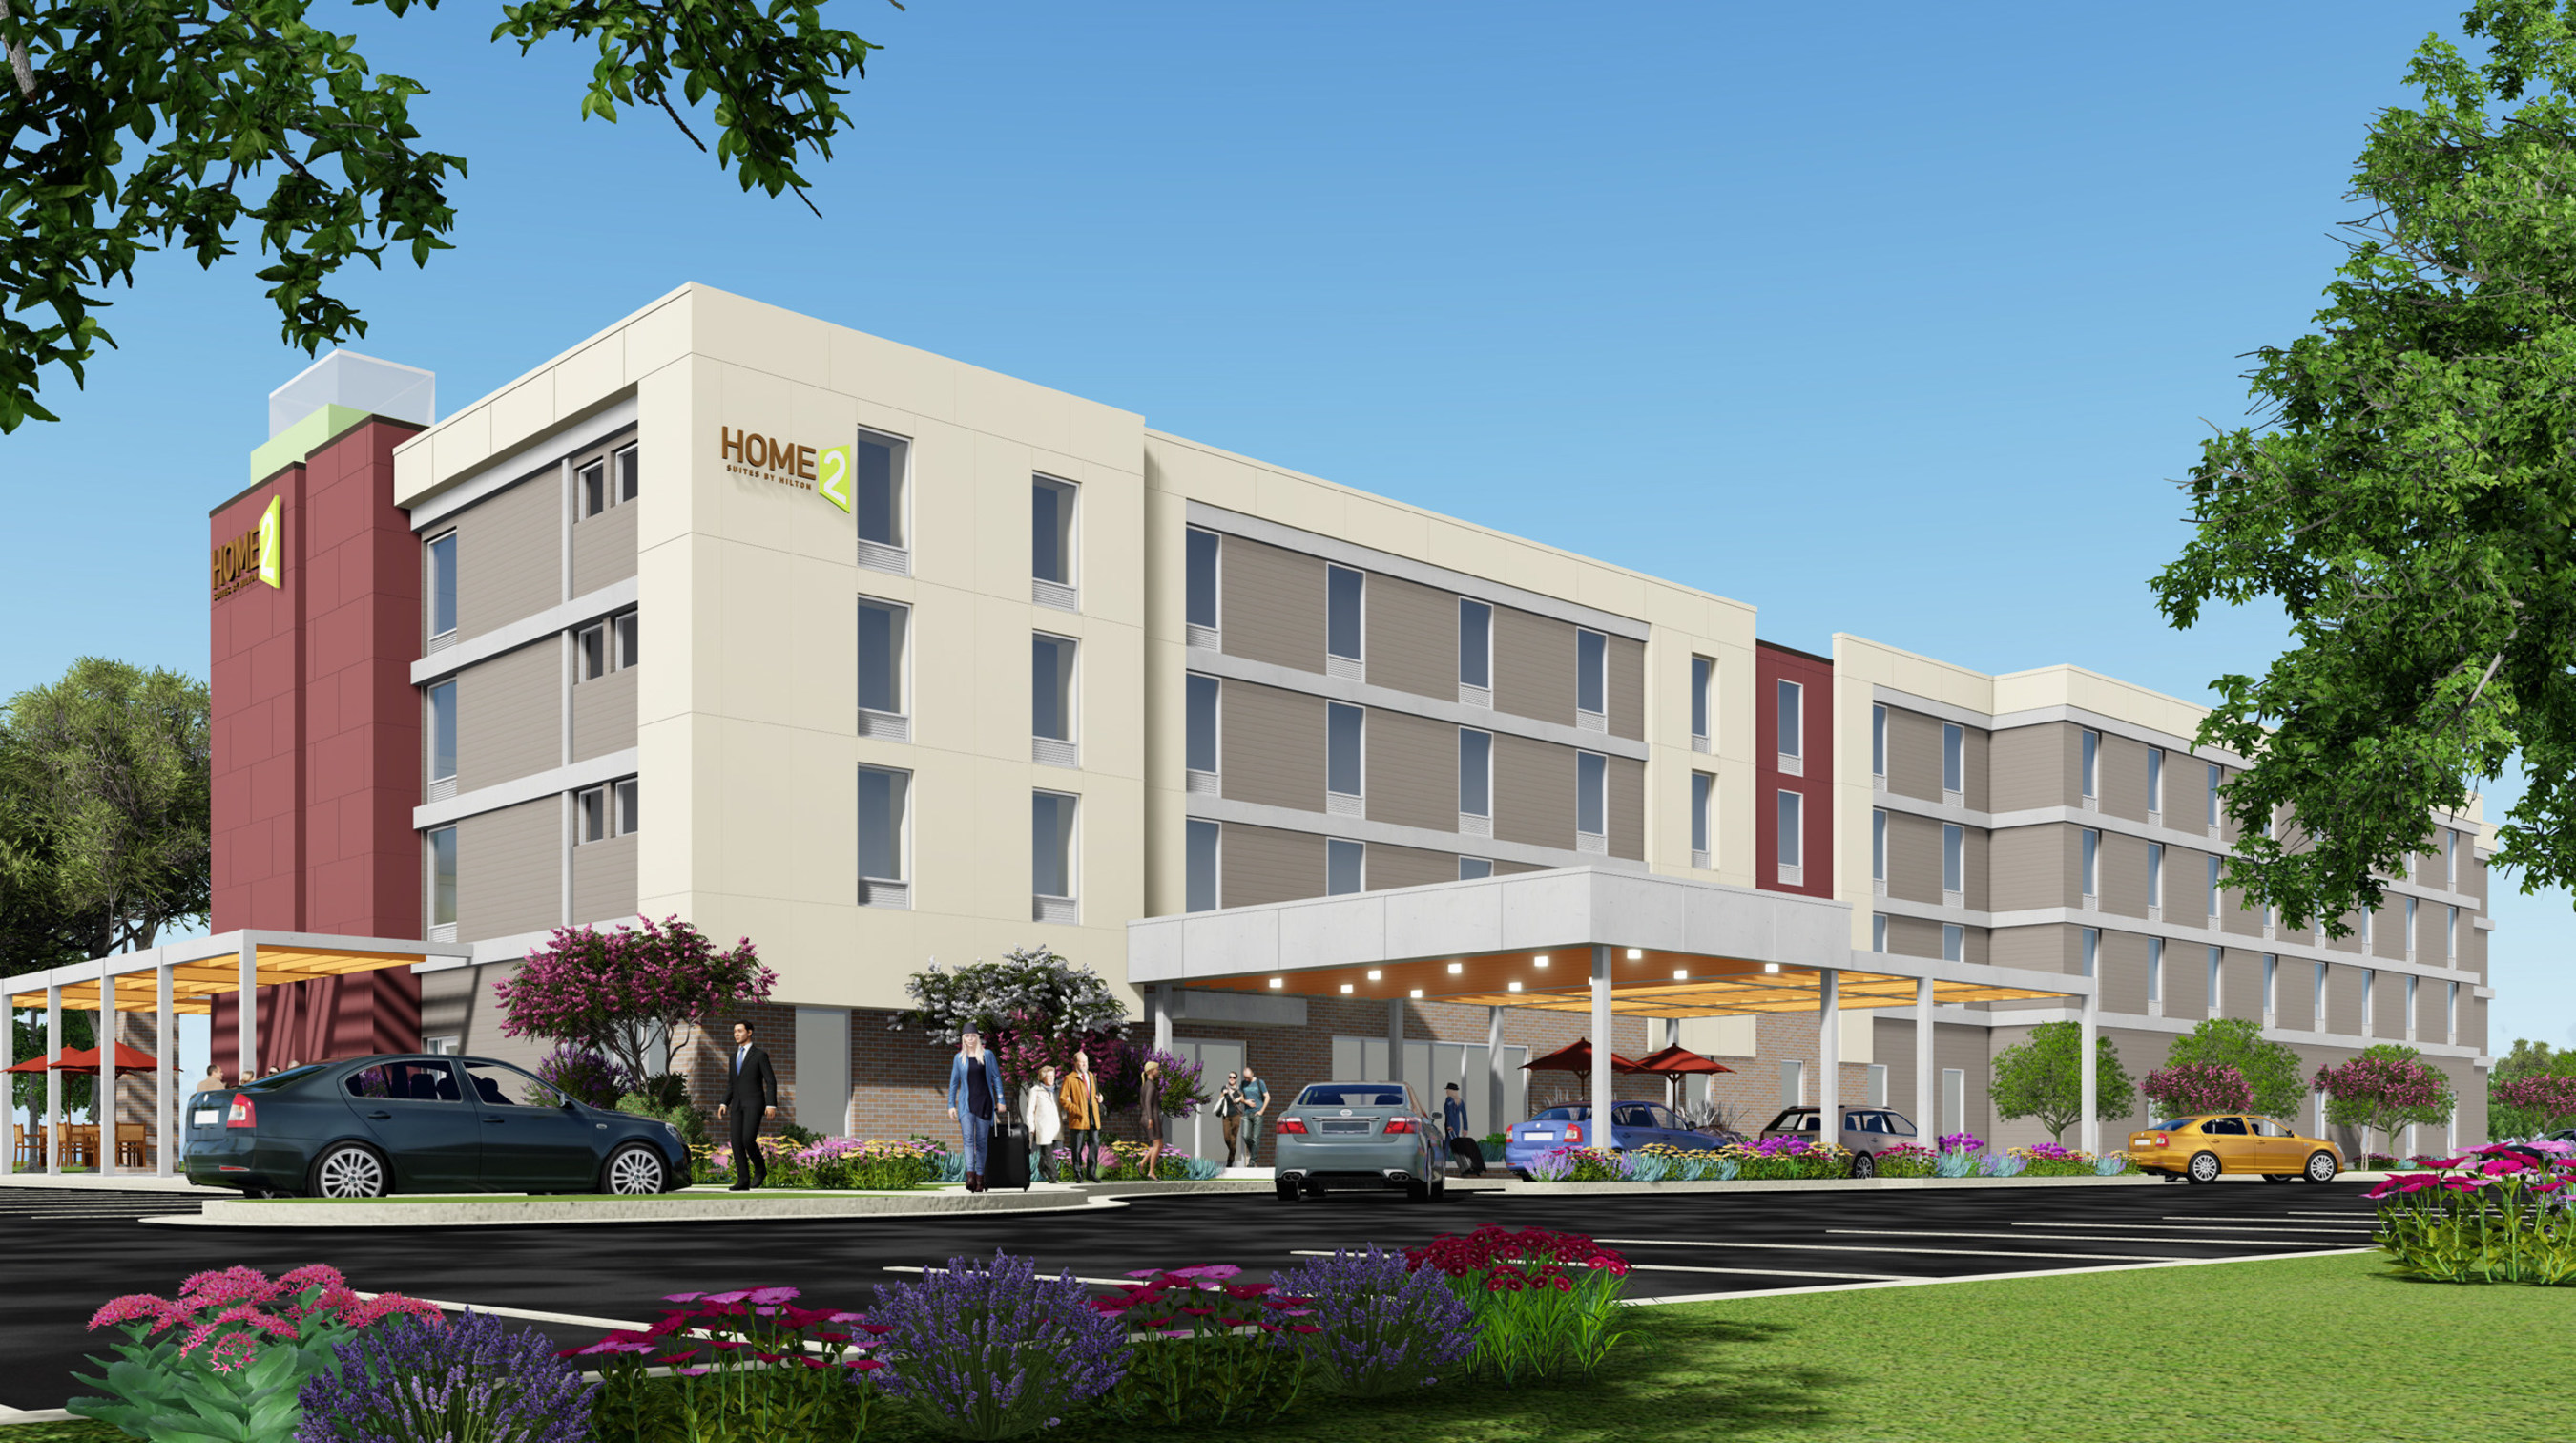 Home2 Suites By Hilton The All Suite Hotel Brand Has Commenced Construction White